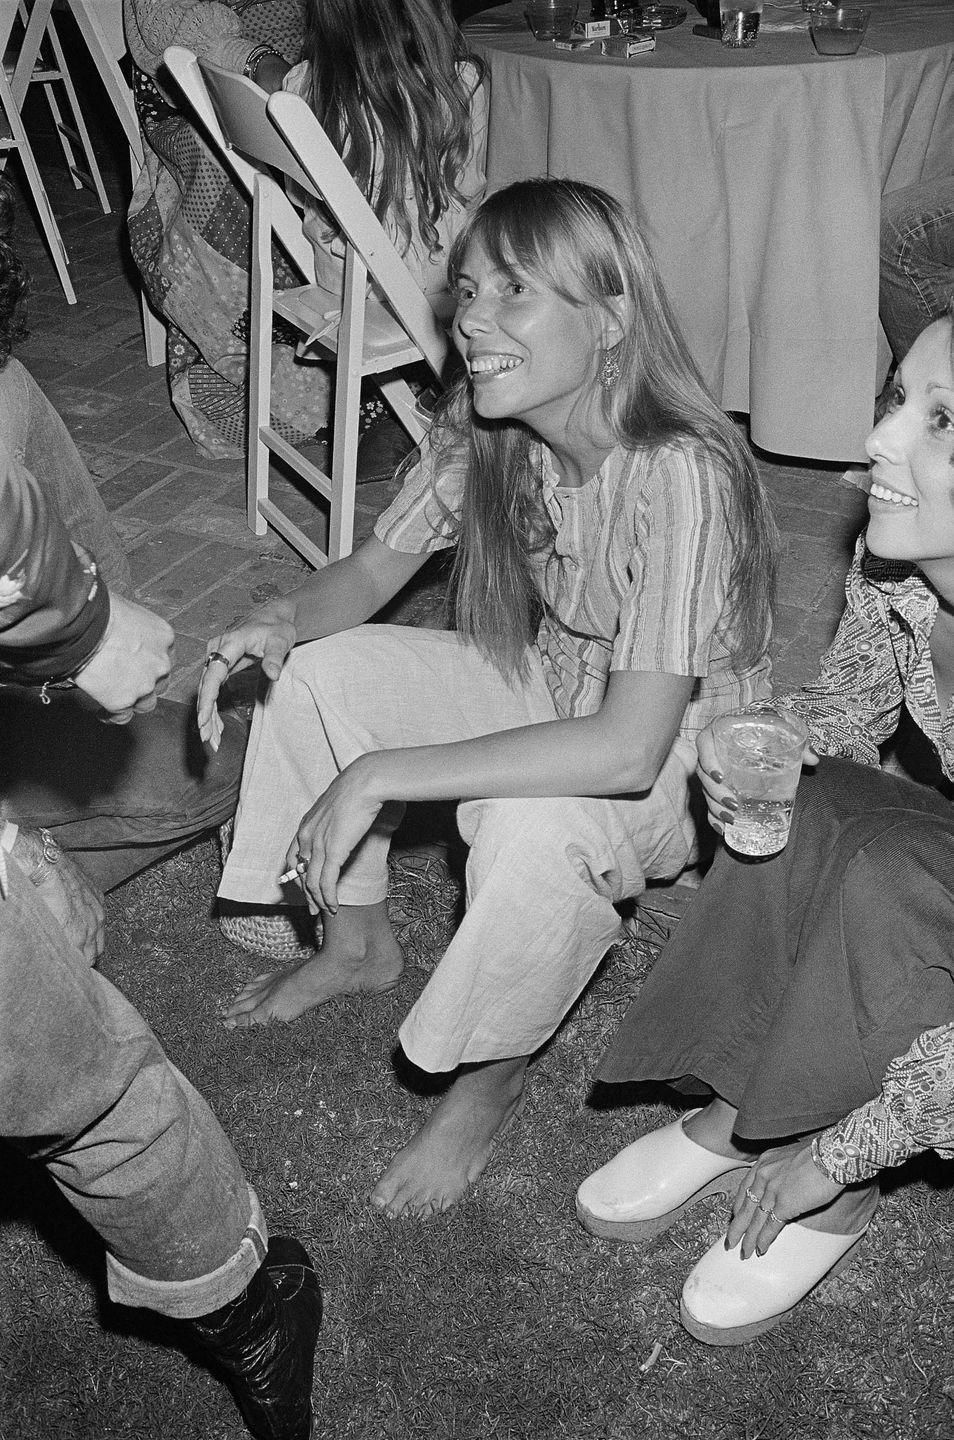 <p>Joni Mitchell attends a party at the home of Cass Elliott of the Mamas & The Papas after attending a John Denver concert on September 21 1972 in Los Angeles, California.</p>